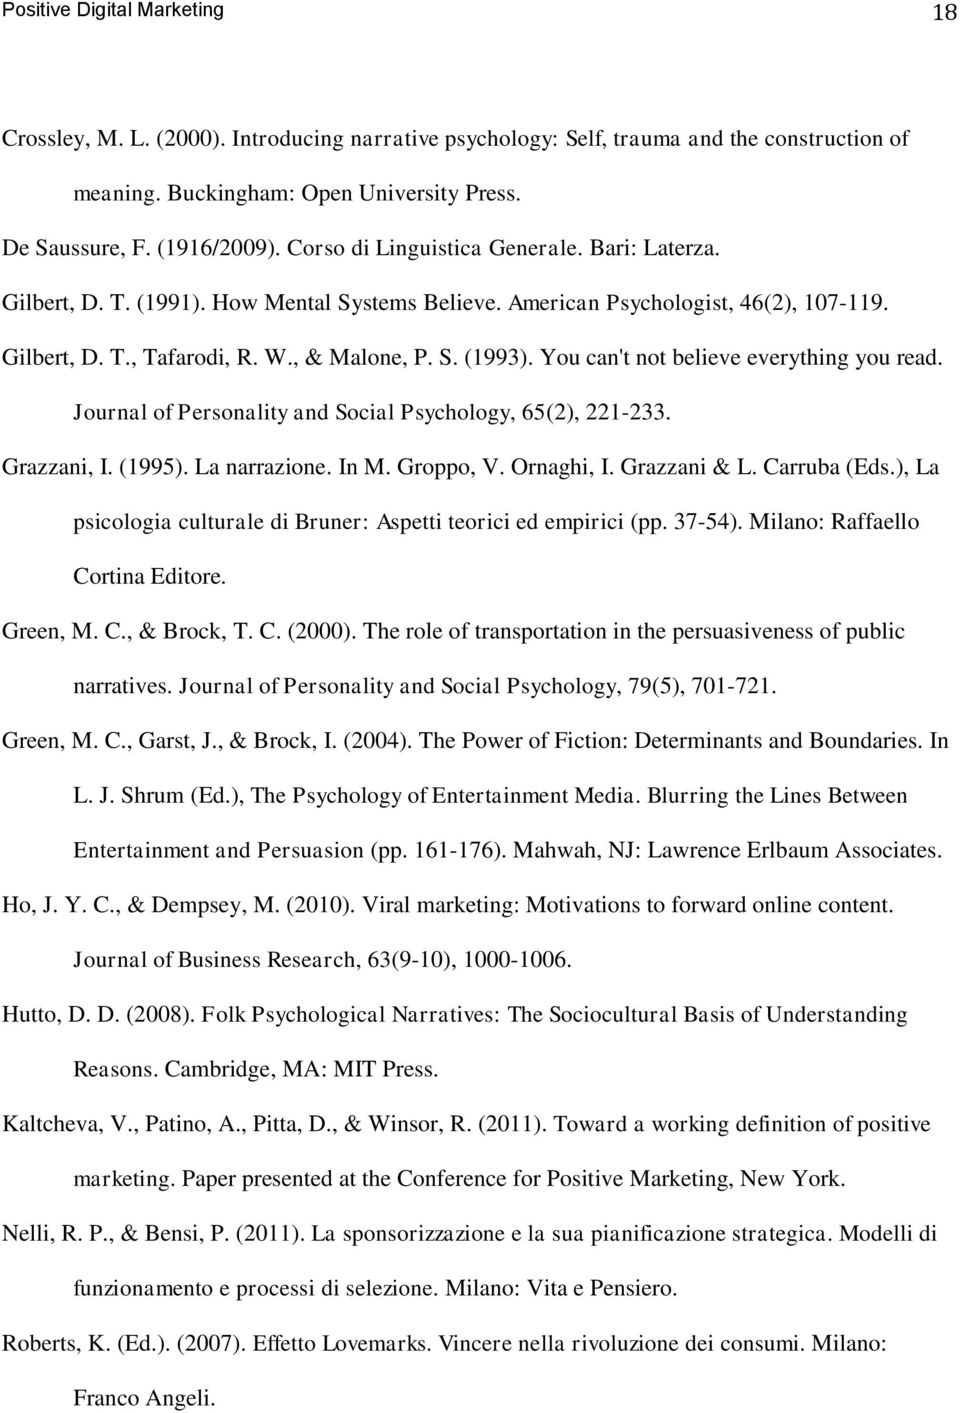 You can't not believe everything you read. Journal of Personality and Social Psychology, 65(2), 221-233. Grazzani, I. (1995). La narrazione. In M. Groppo, V. Ornaghi, I. Grazzani & L. Carruba (Eds.